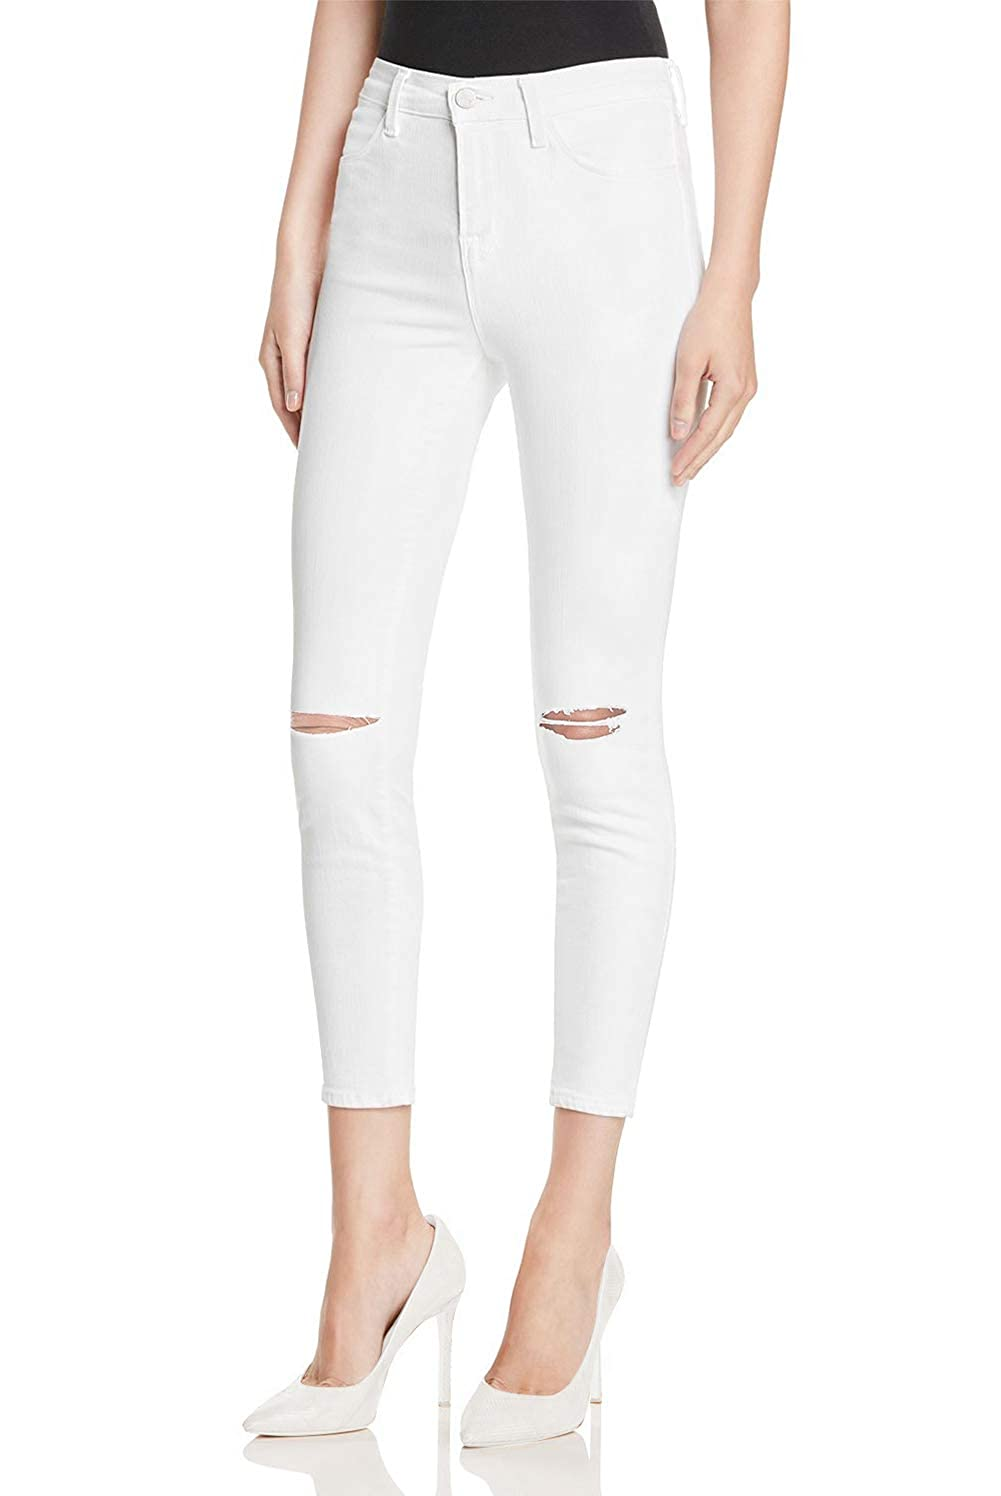 MONYRAY High Rise Skinny Jeans Cotton Stretch